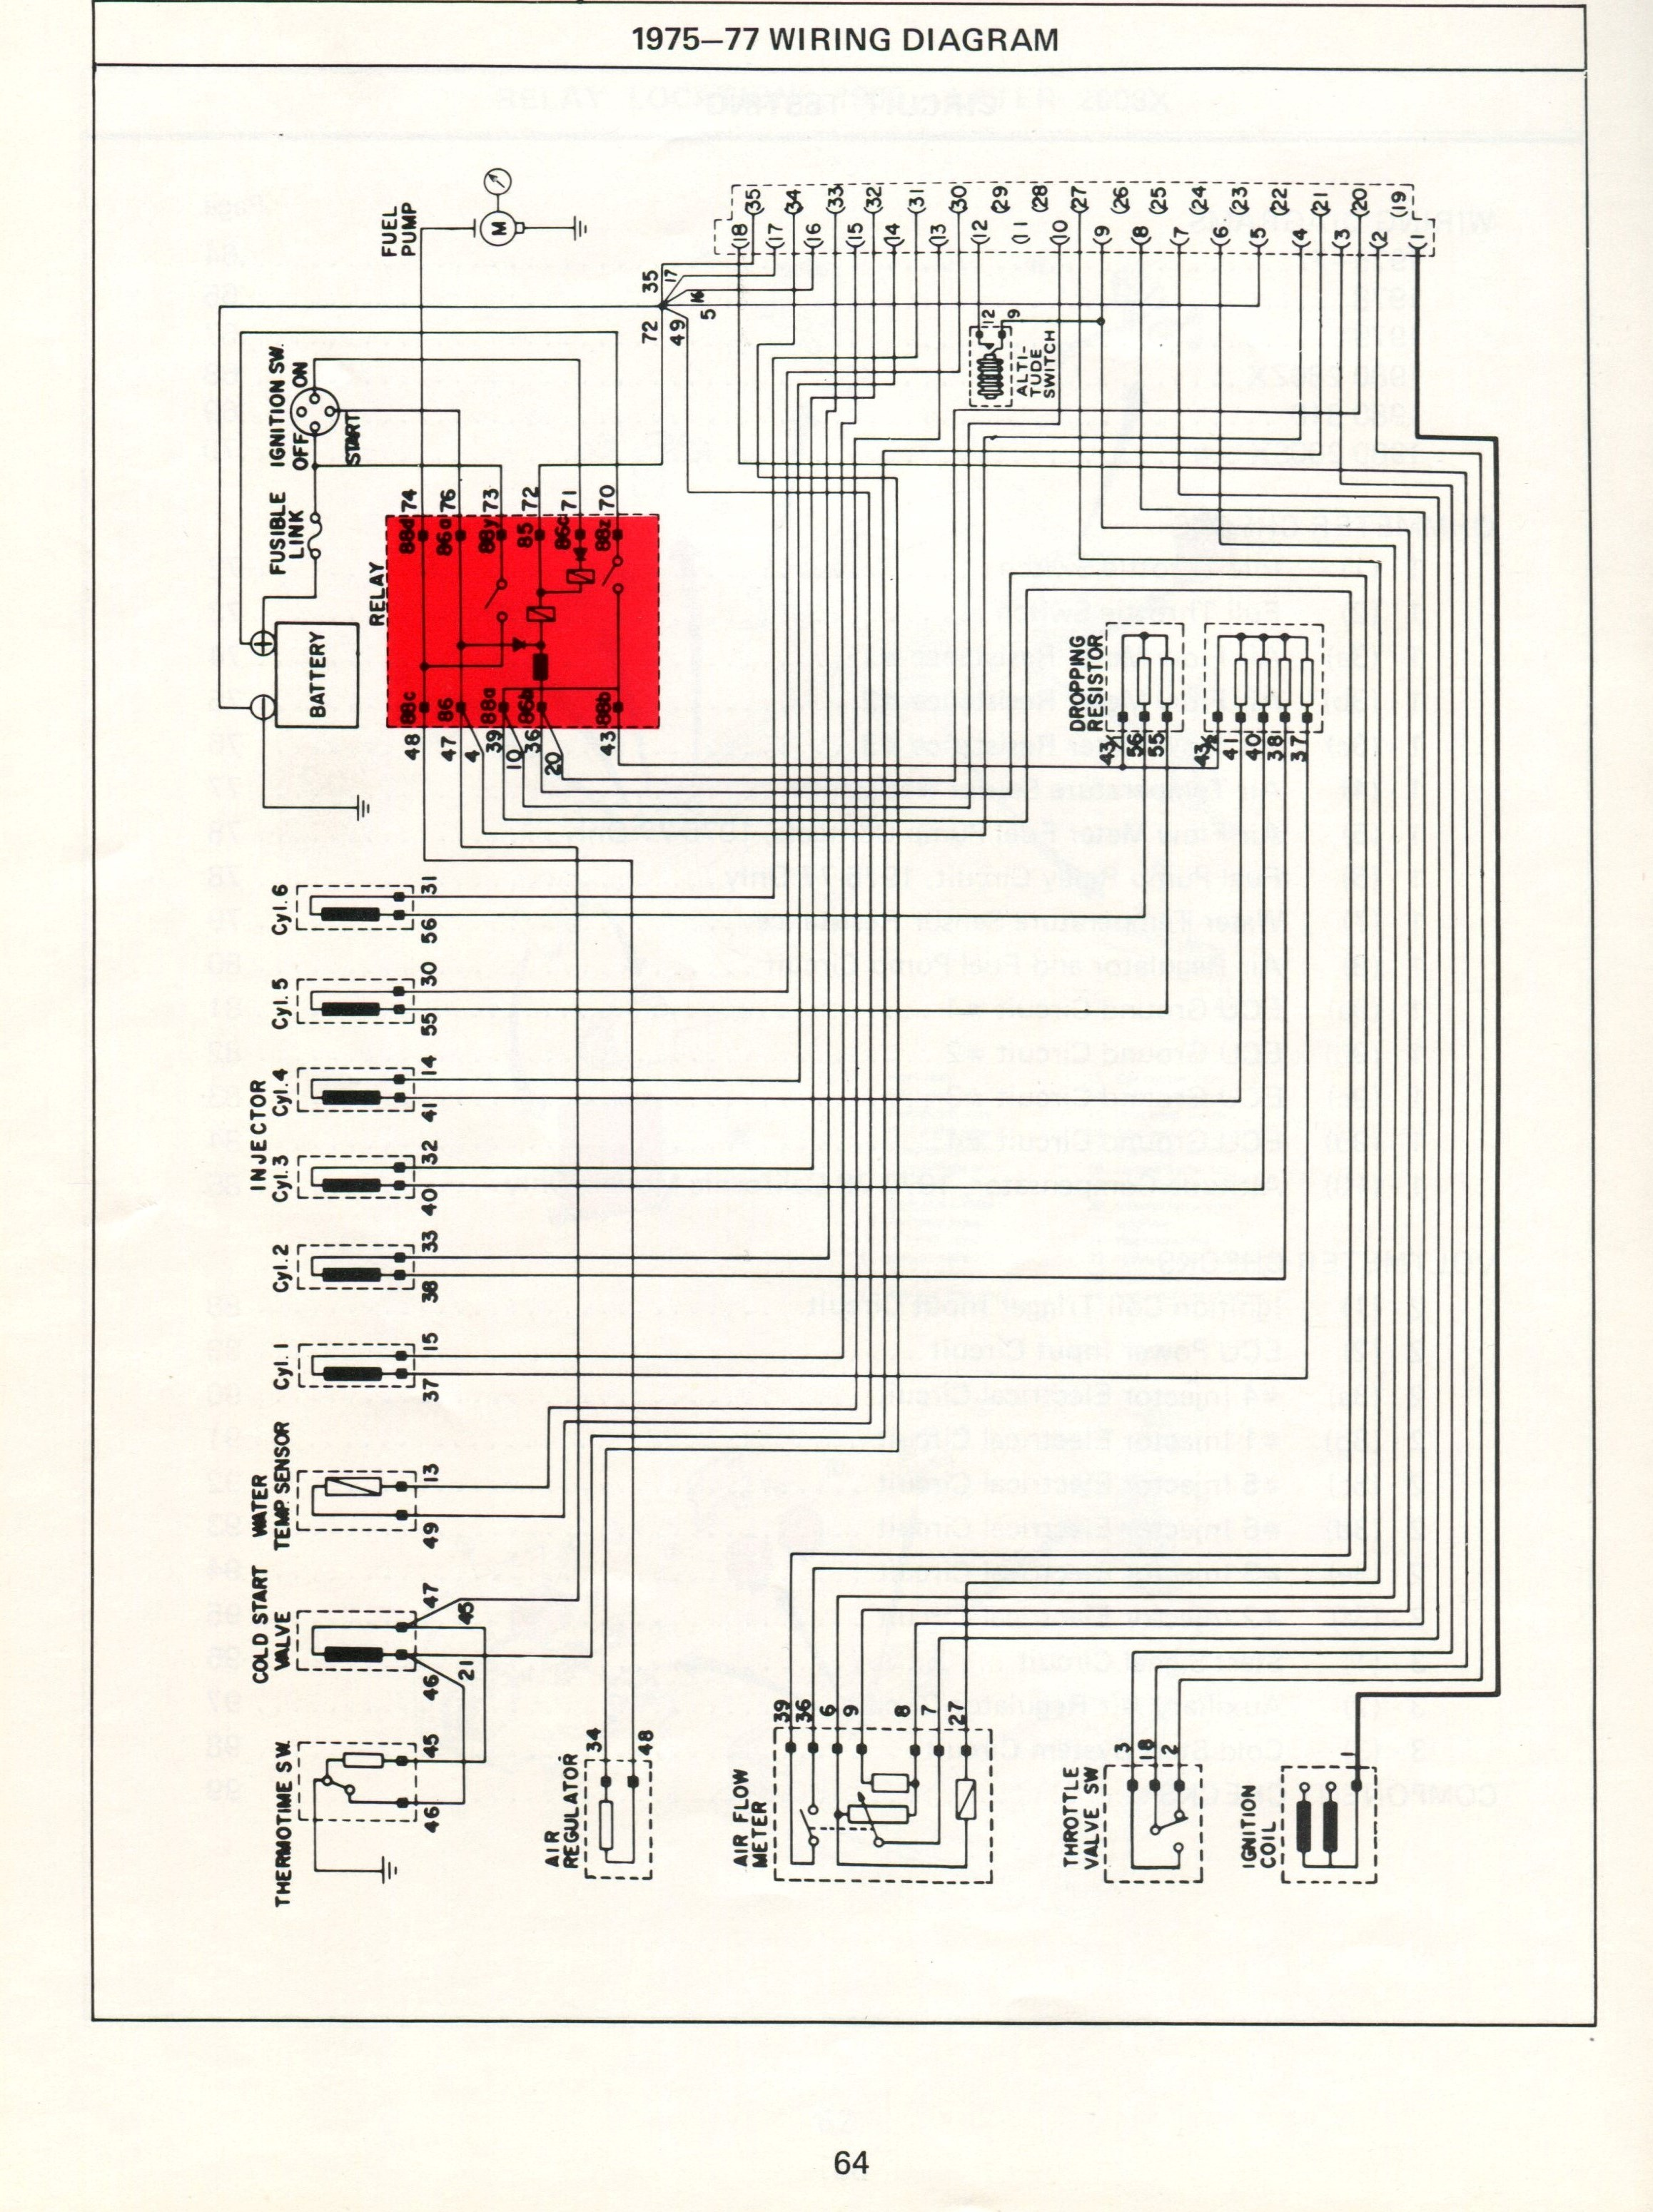 datsun_fuel_injection 69 datsun electronic fuel injection wiring diagrams 280zx wiring diagram at pacquiaovsvargaslive.co